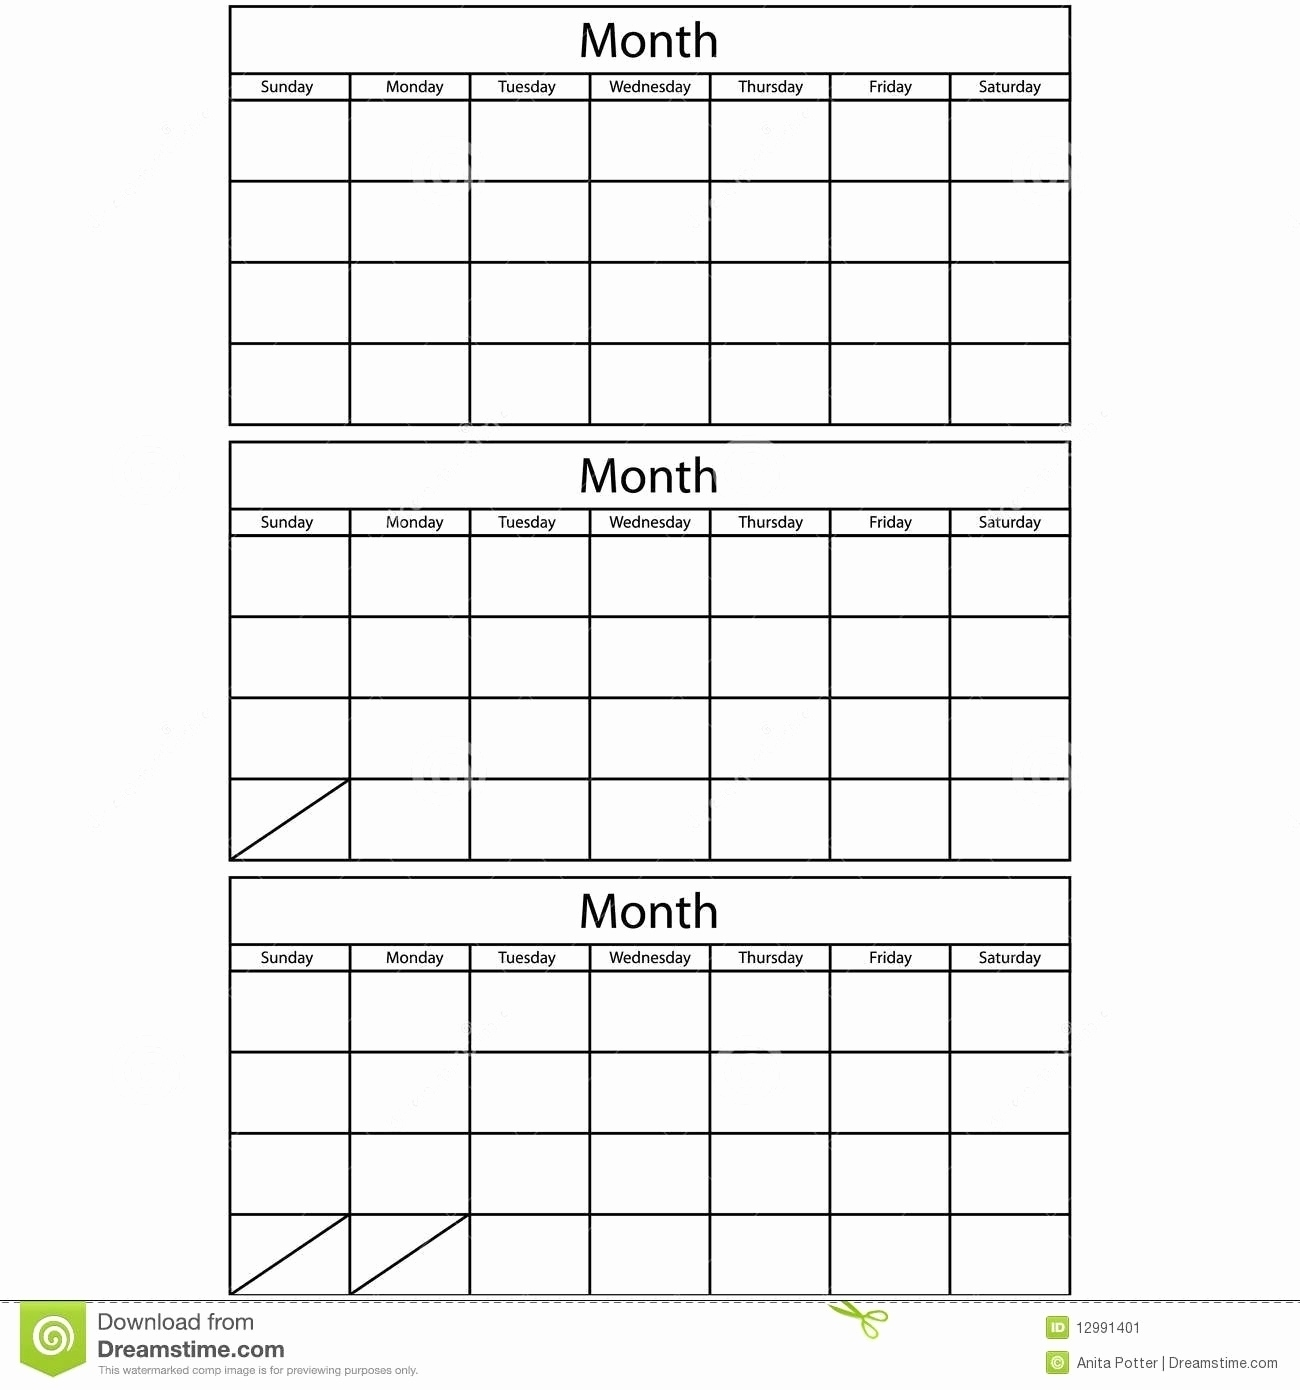 graphic about Printable 3 Month Calendar identify Absolutely free 3 Thirty day period Calendar Templates - Calendar Drive Layout